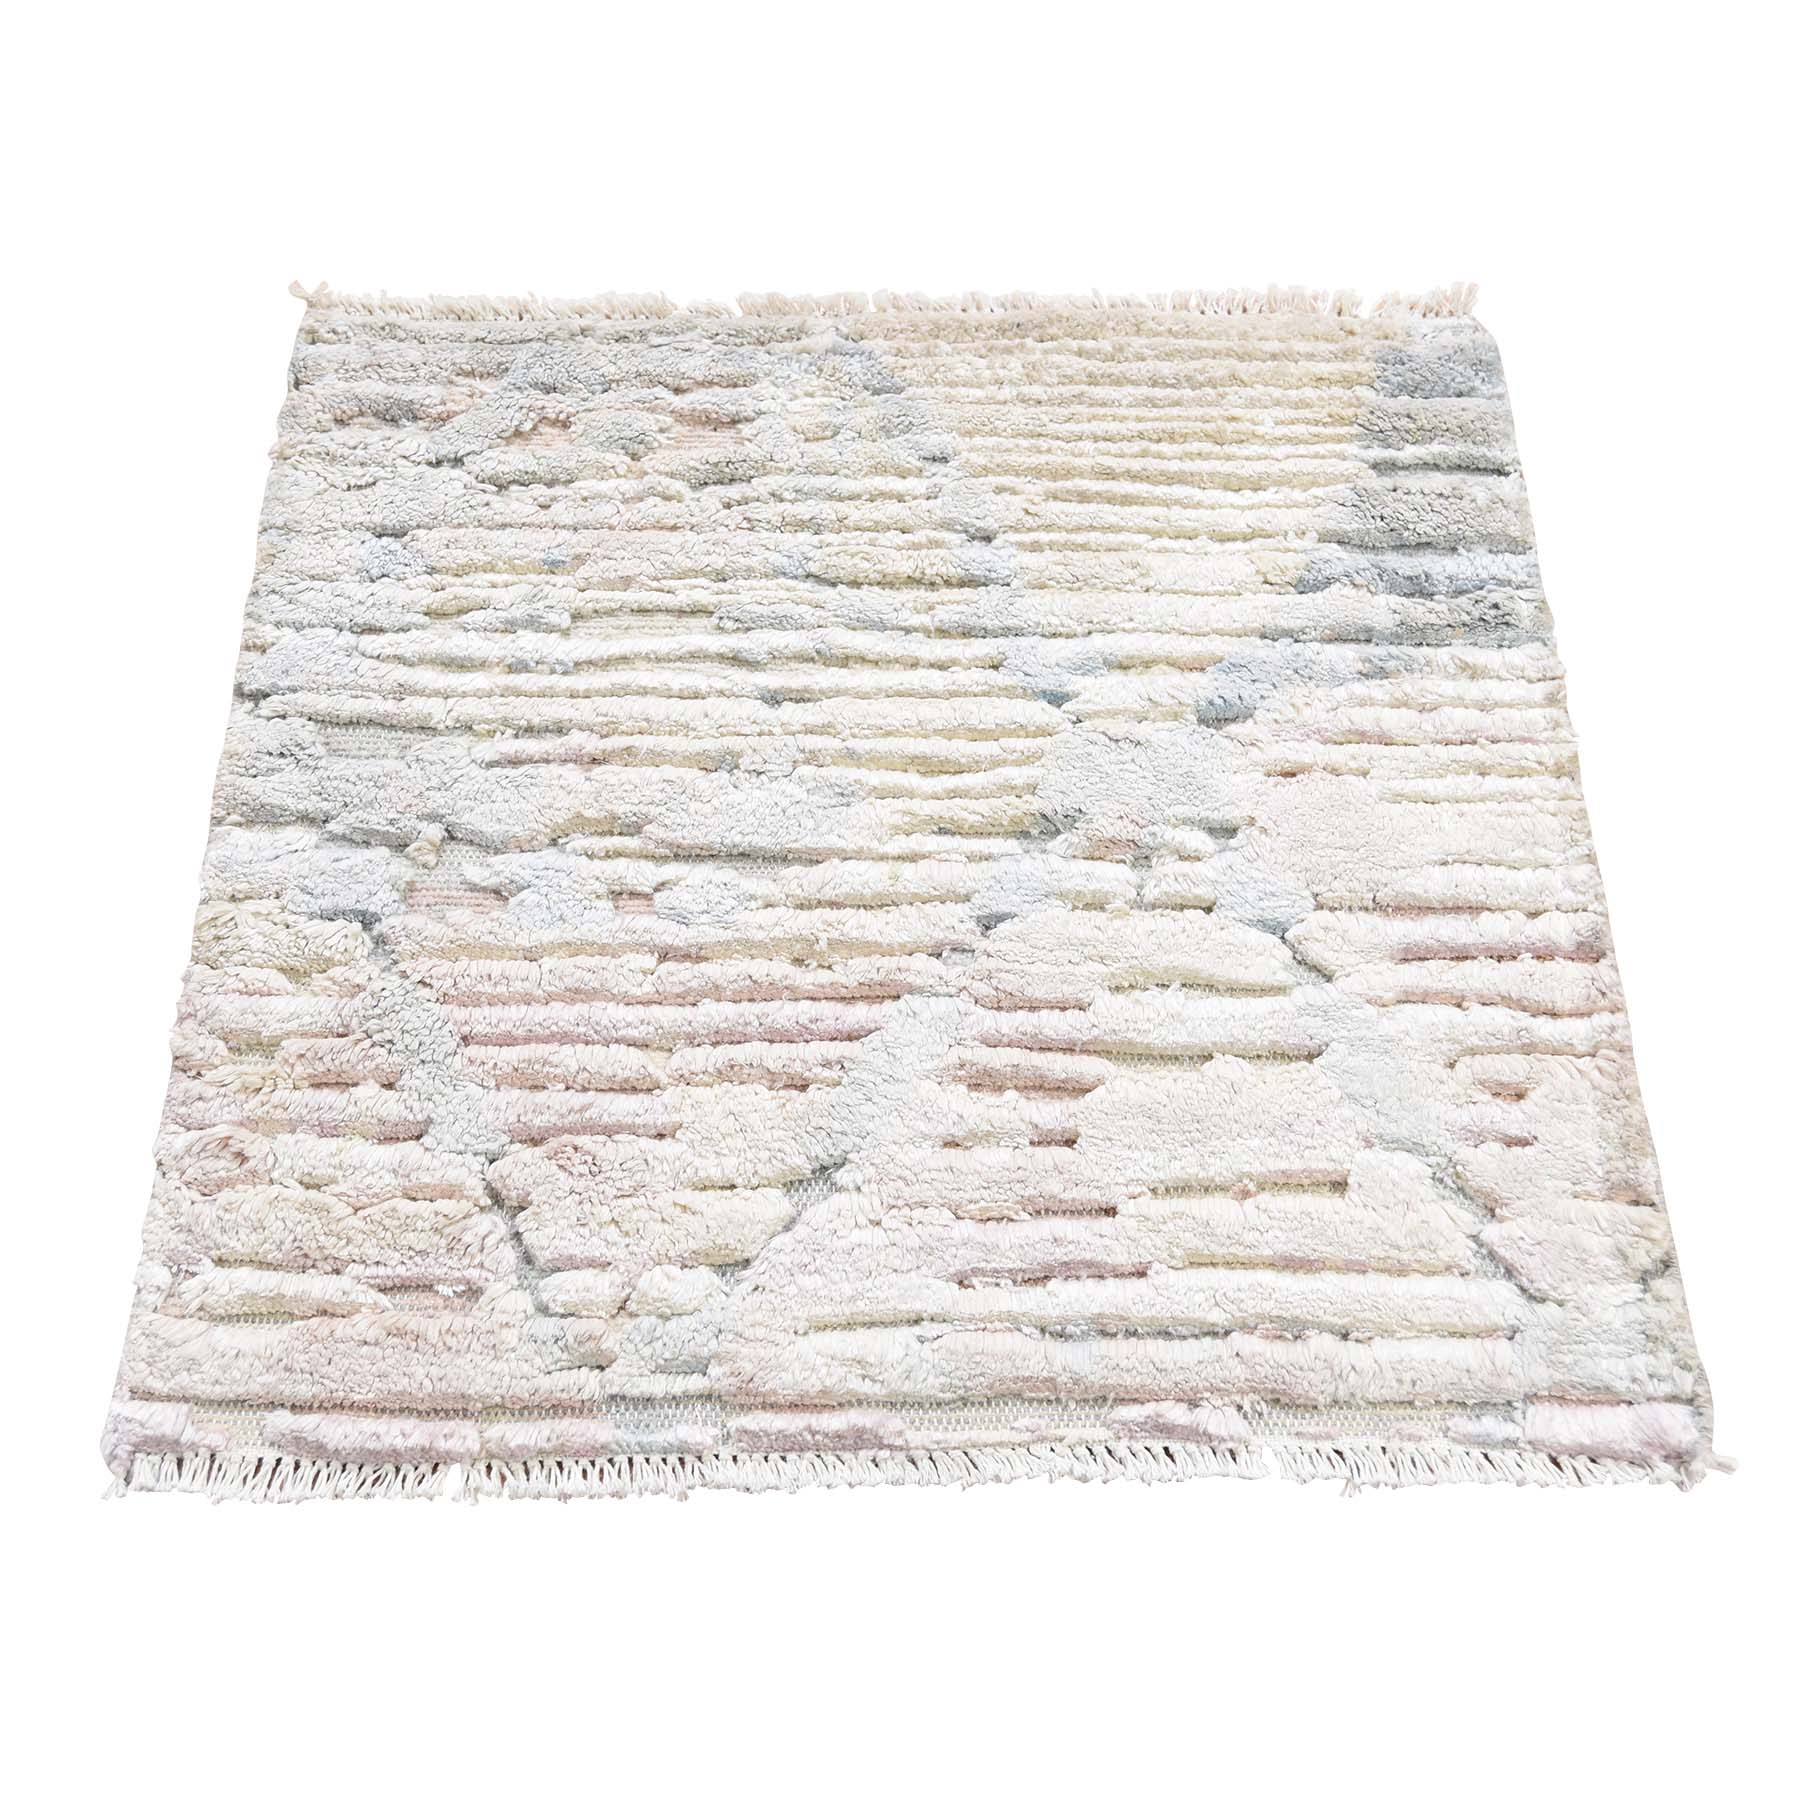 2'X2' Sampler Luxurious Plush Pure Silk With Oxidized Wool Hand-Knotted Oriental Rug moad67b8